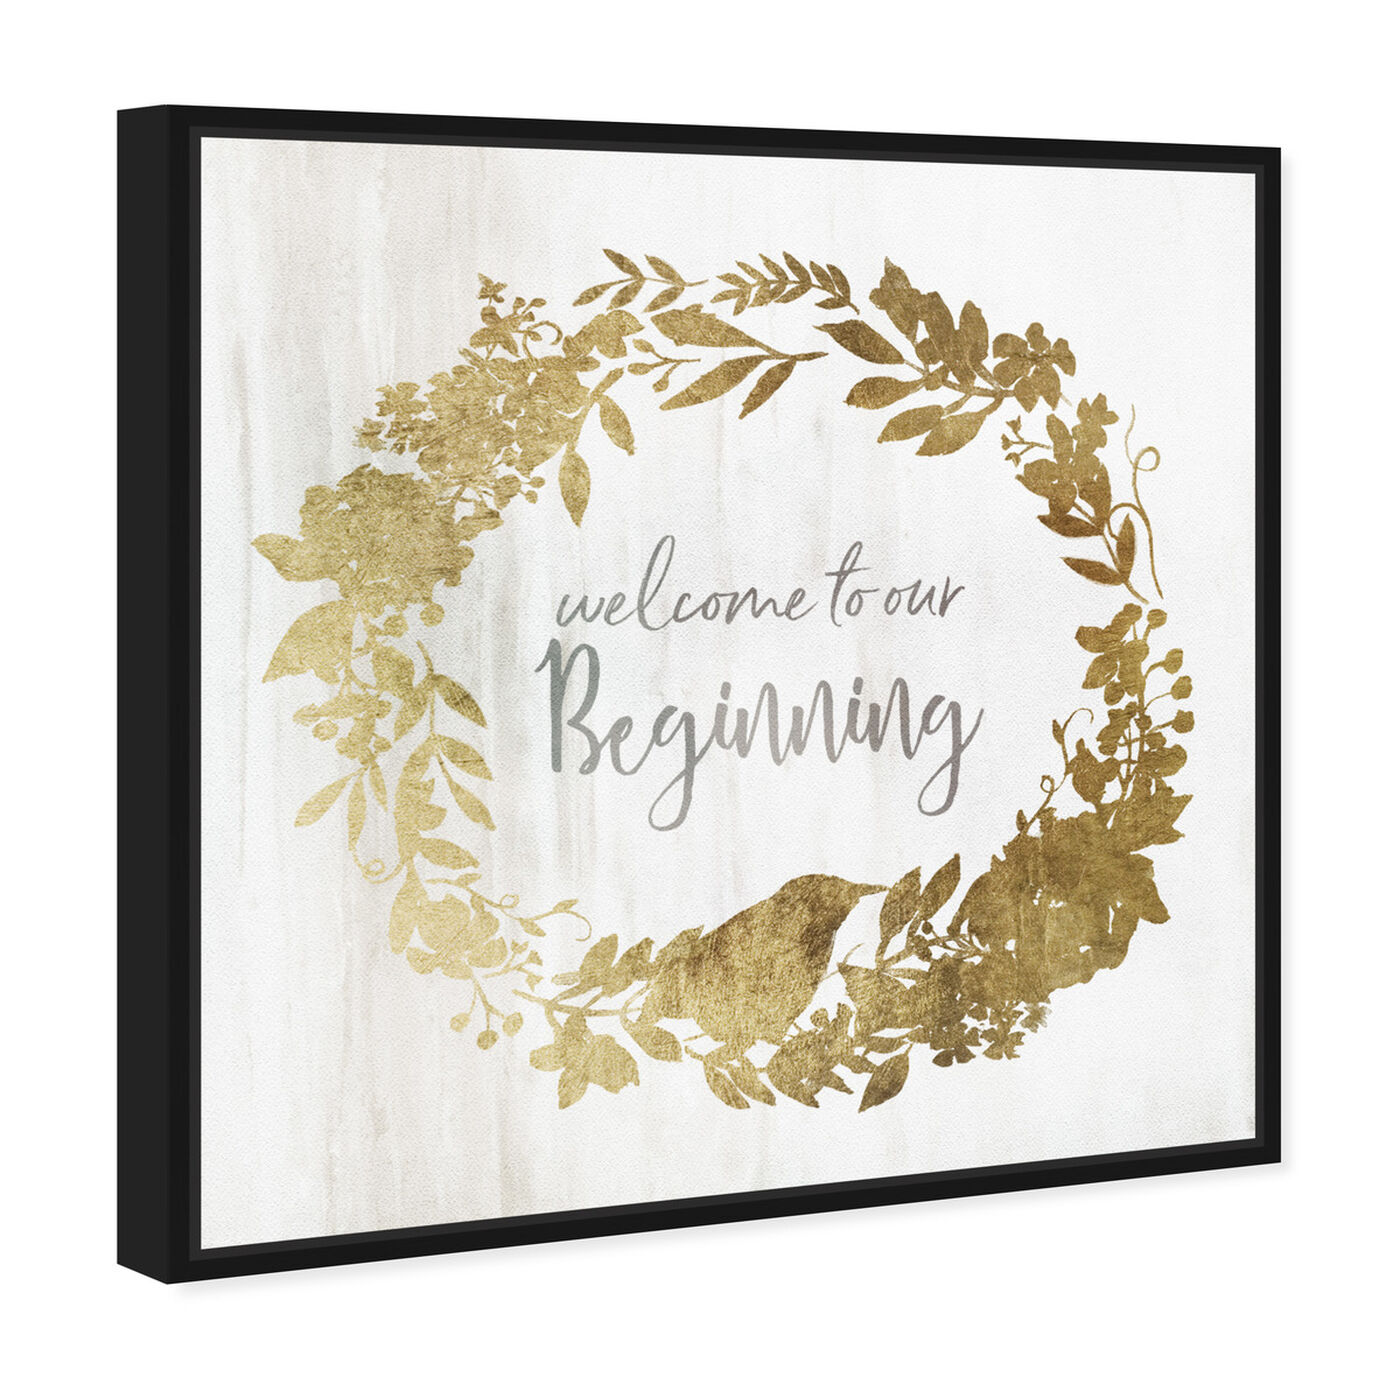 Angled view of Welcome to our Beginning featuring typography and quotes and love quotes and sayings art.